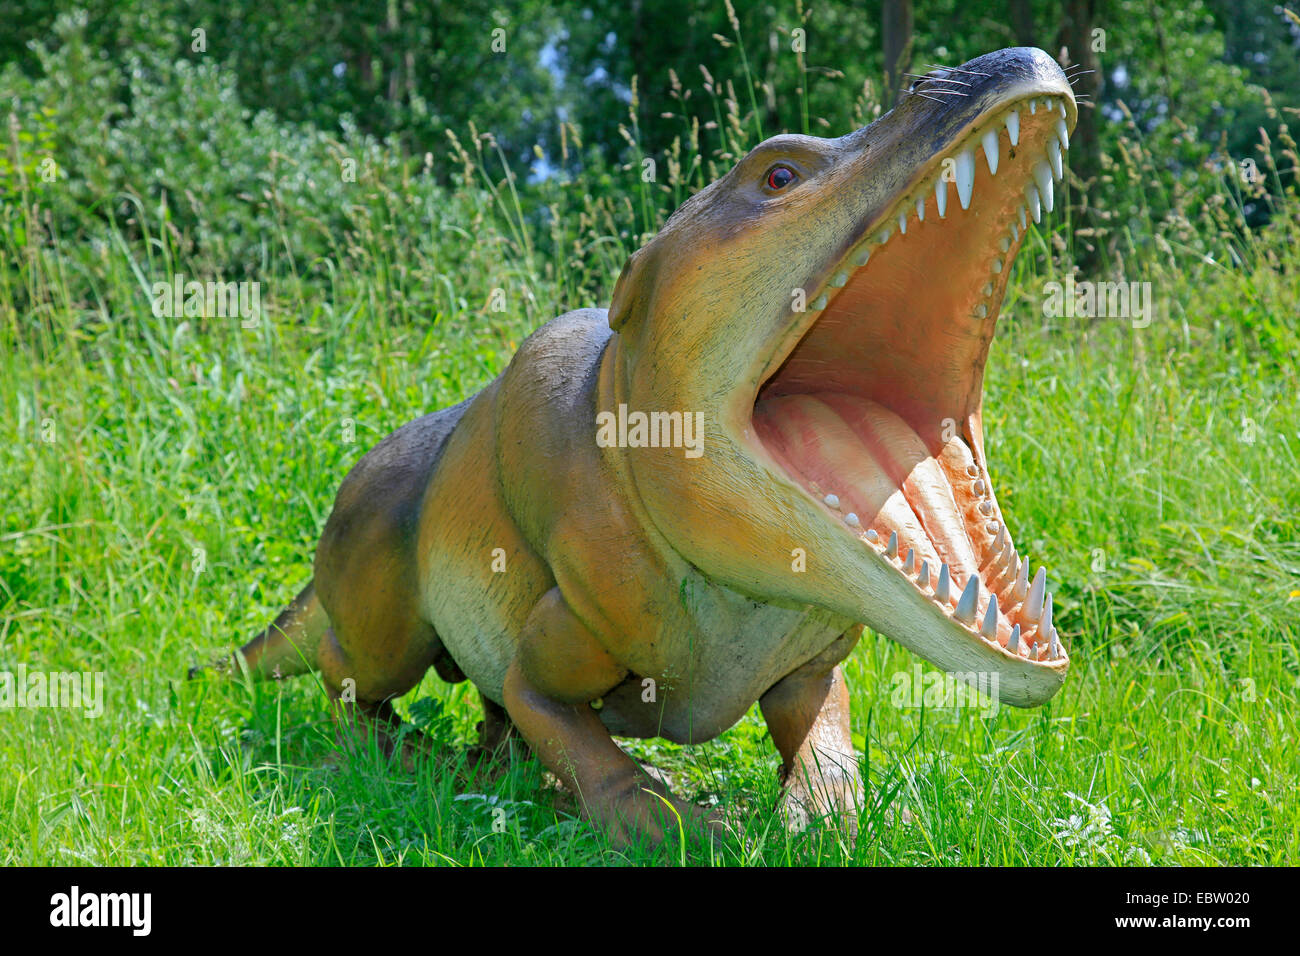 Ambulocetus (Ambulocetus natans), primitive extinct species of walesStock Photo